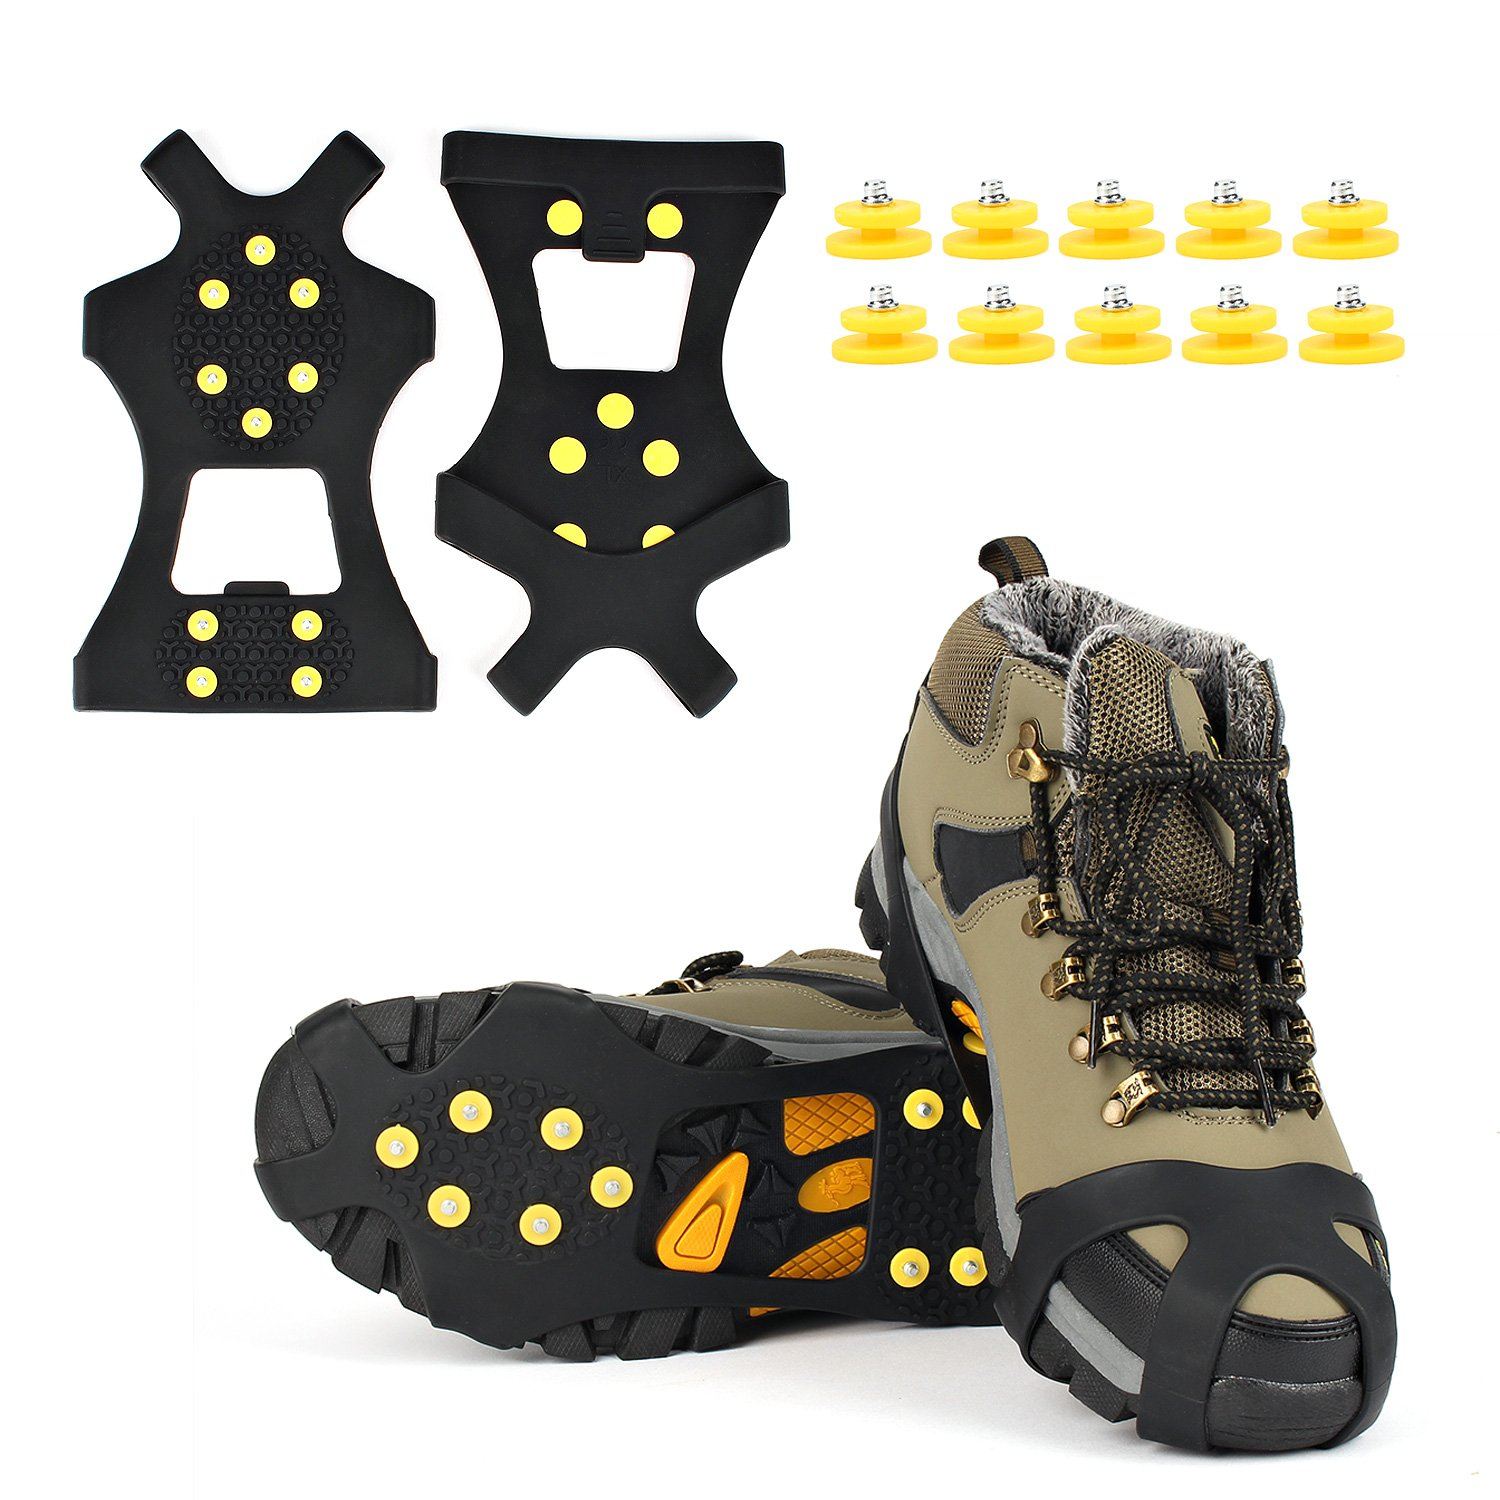 Ice Grips, EONPOW Ice and Snow Grips Cleat Over Shoe/Boot Traction Cleat Rubber Spikes Anti Slip 10 Steel Studs Crampons Slip-on Stretch Footwear AUTOXON